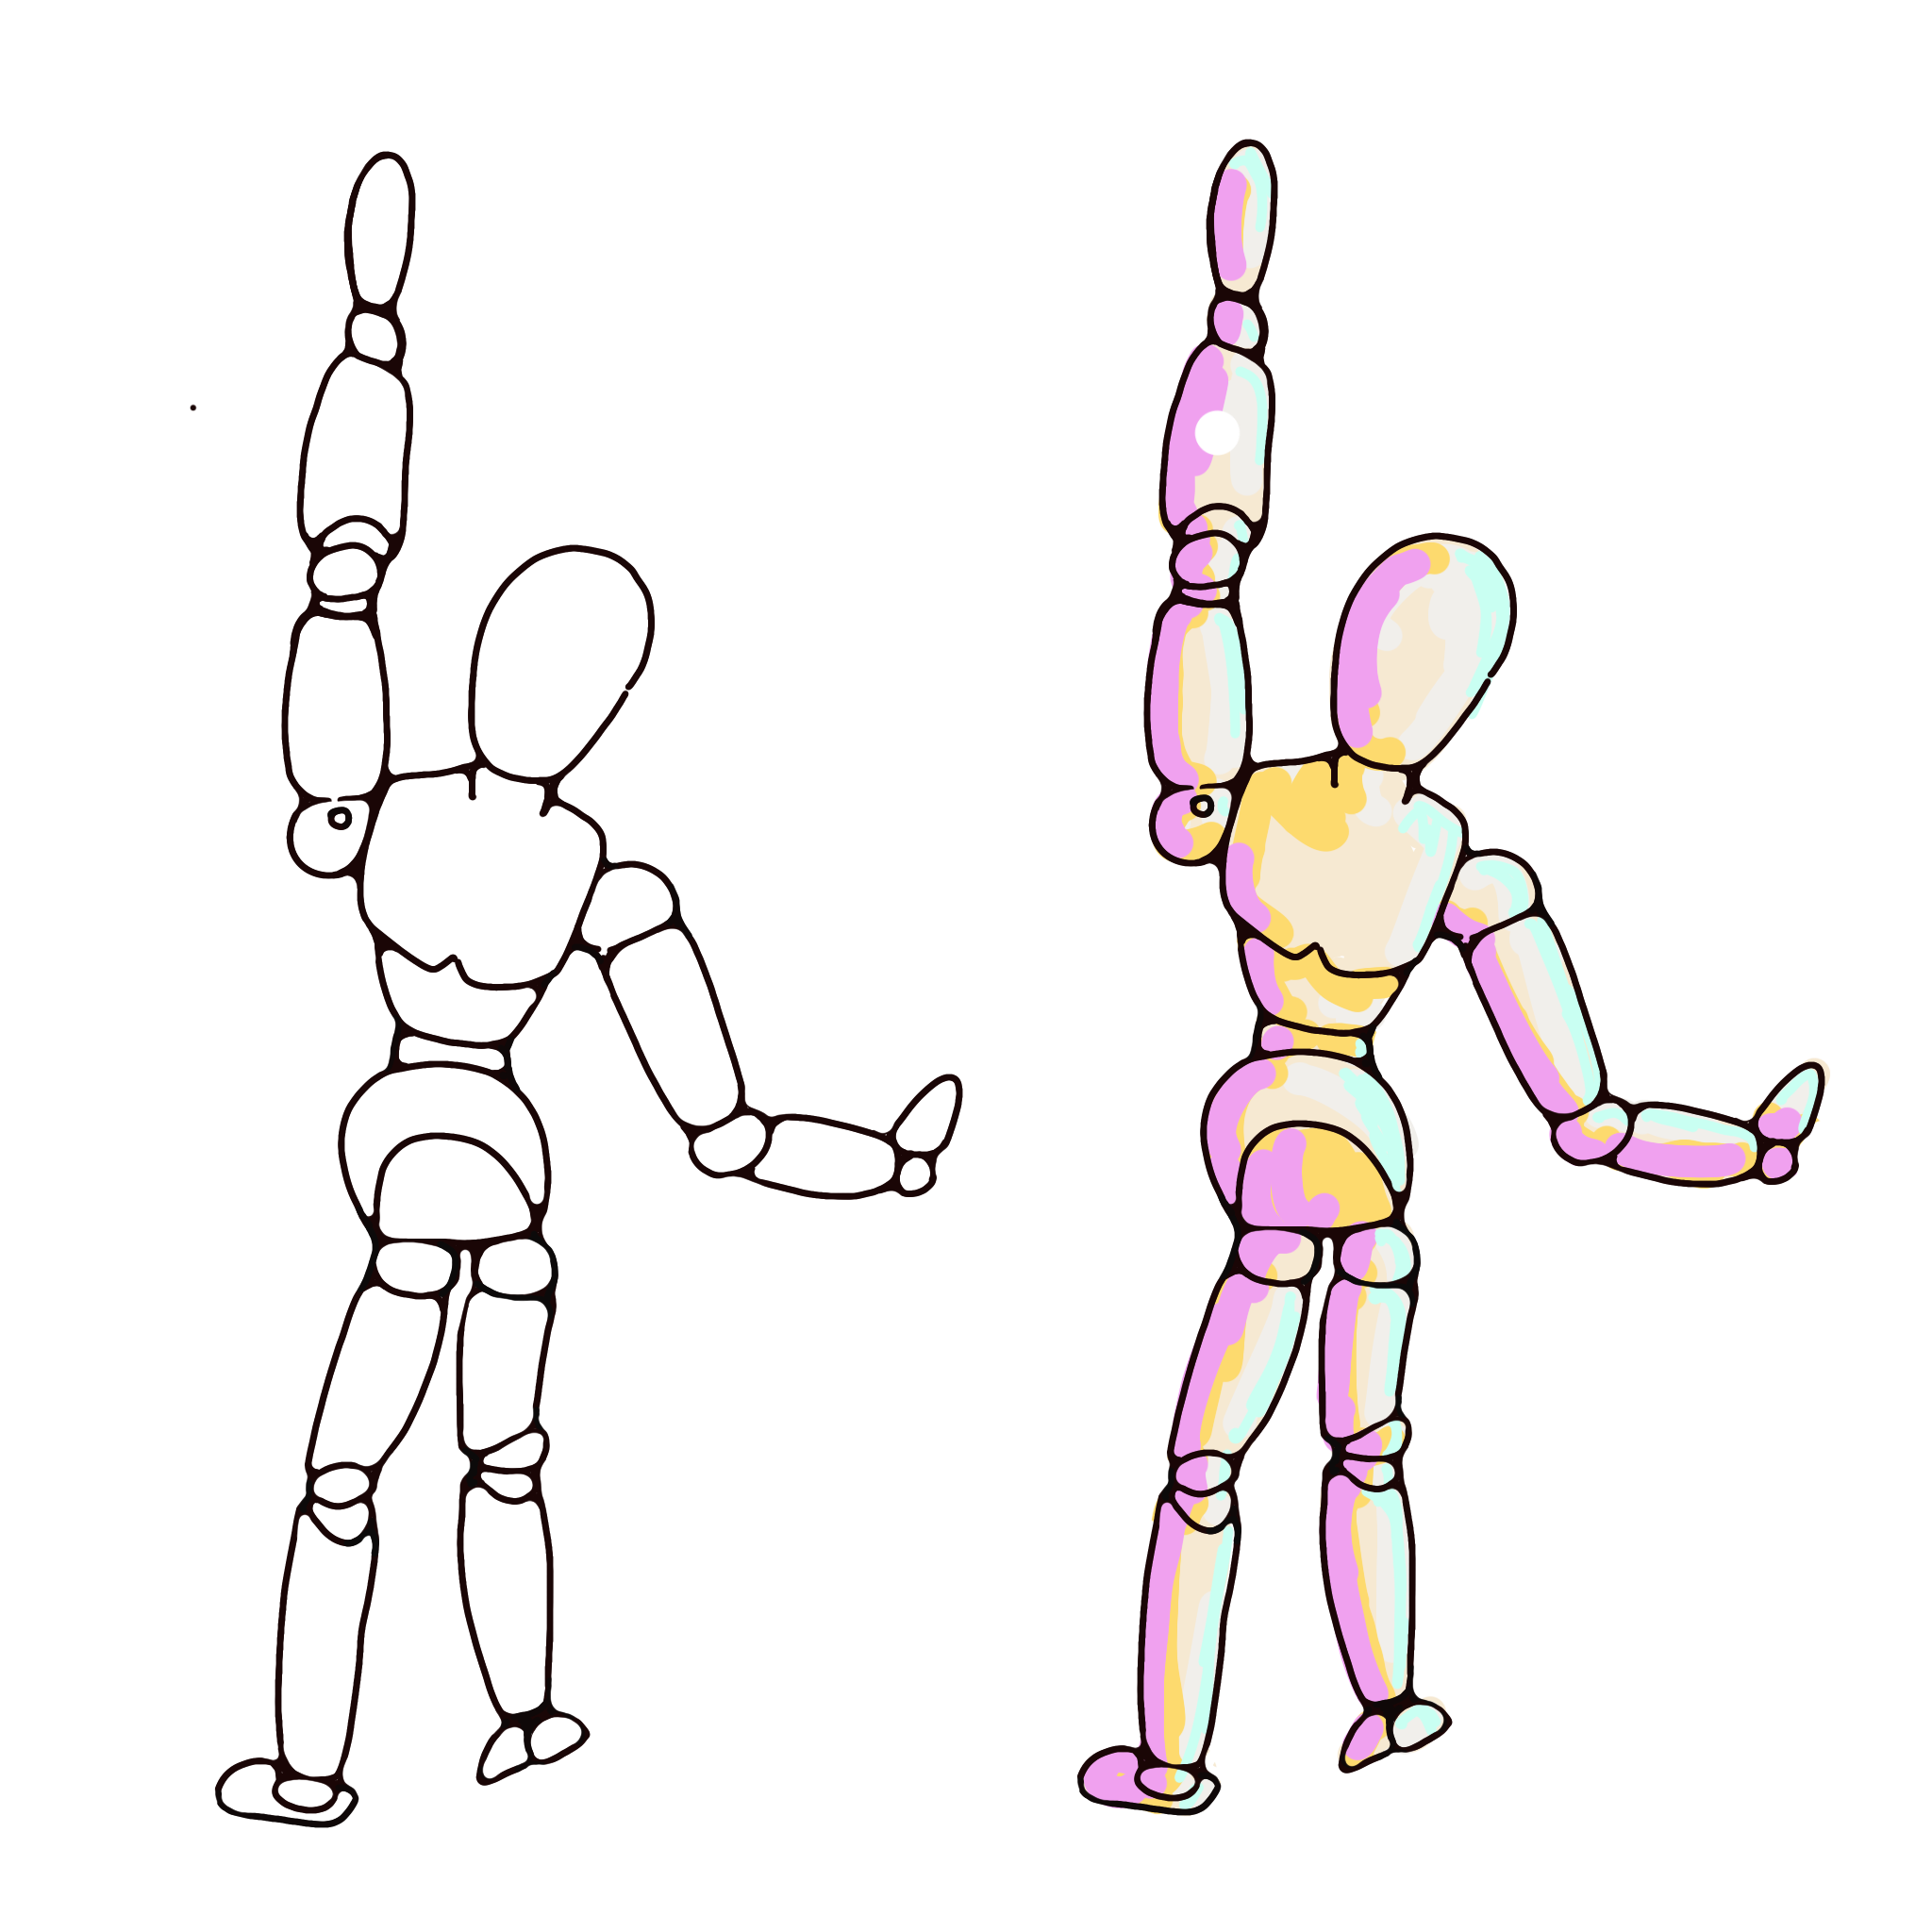 PNG of Artist Figure Reaching Up